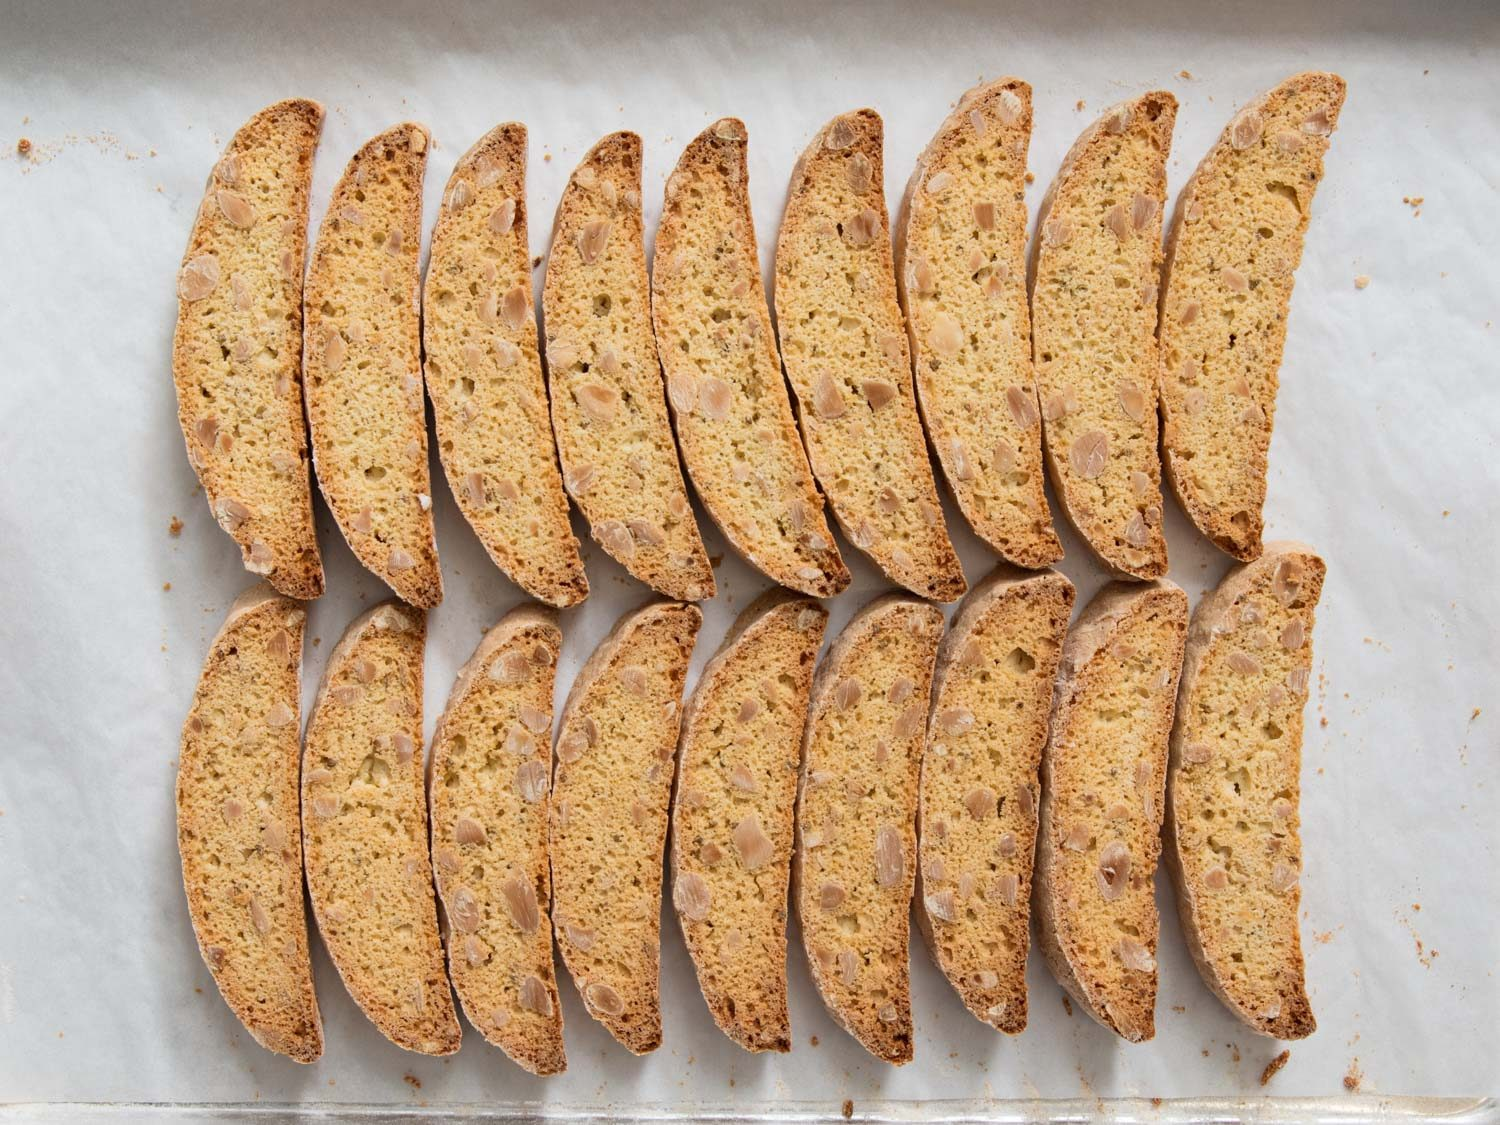 tray of baked biscotti